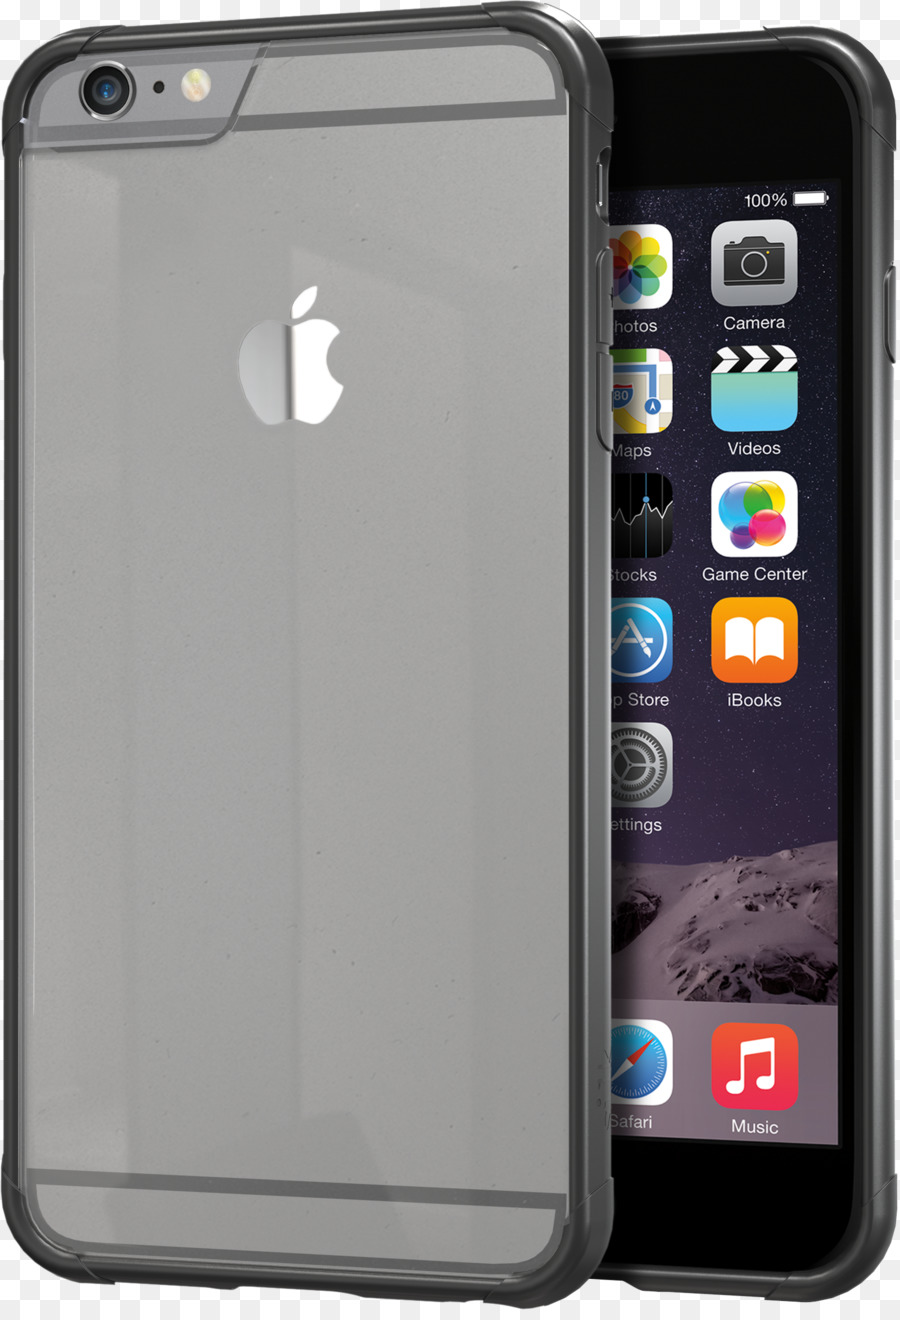 apple png download - 1594*2320 - Free Transparent Iphone 6